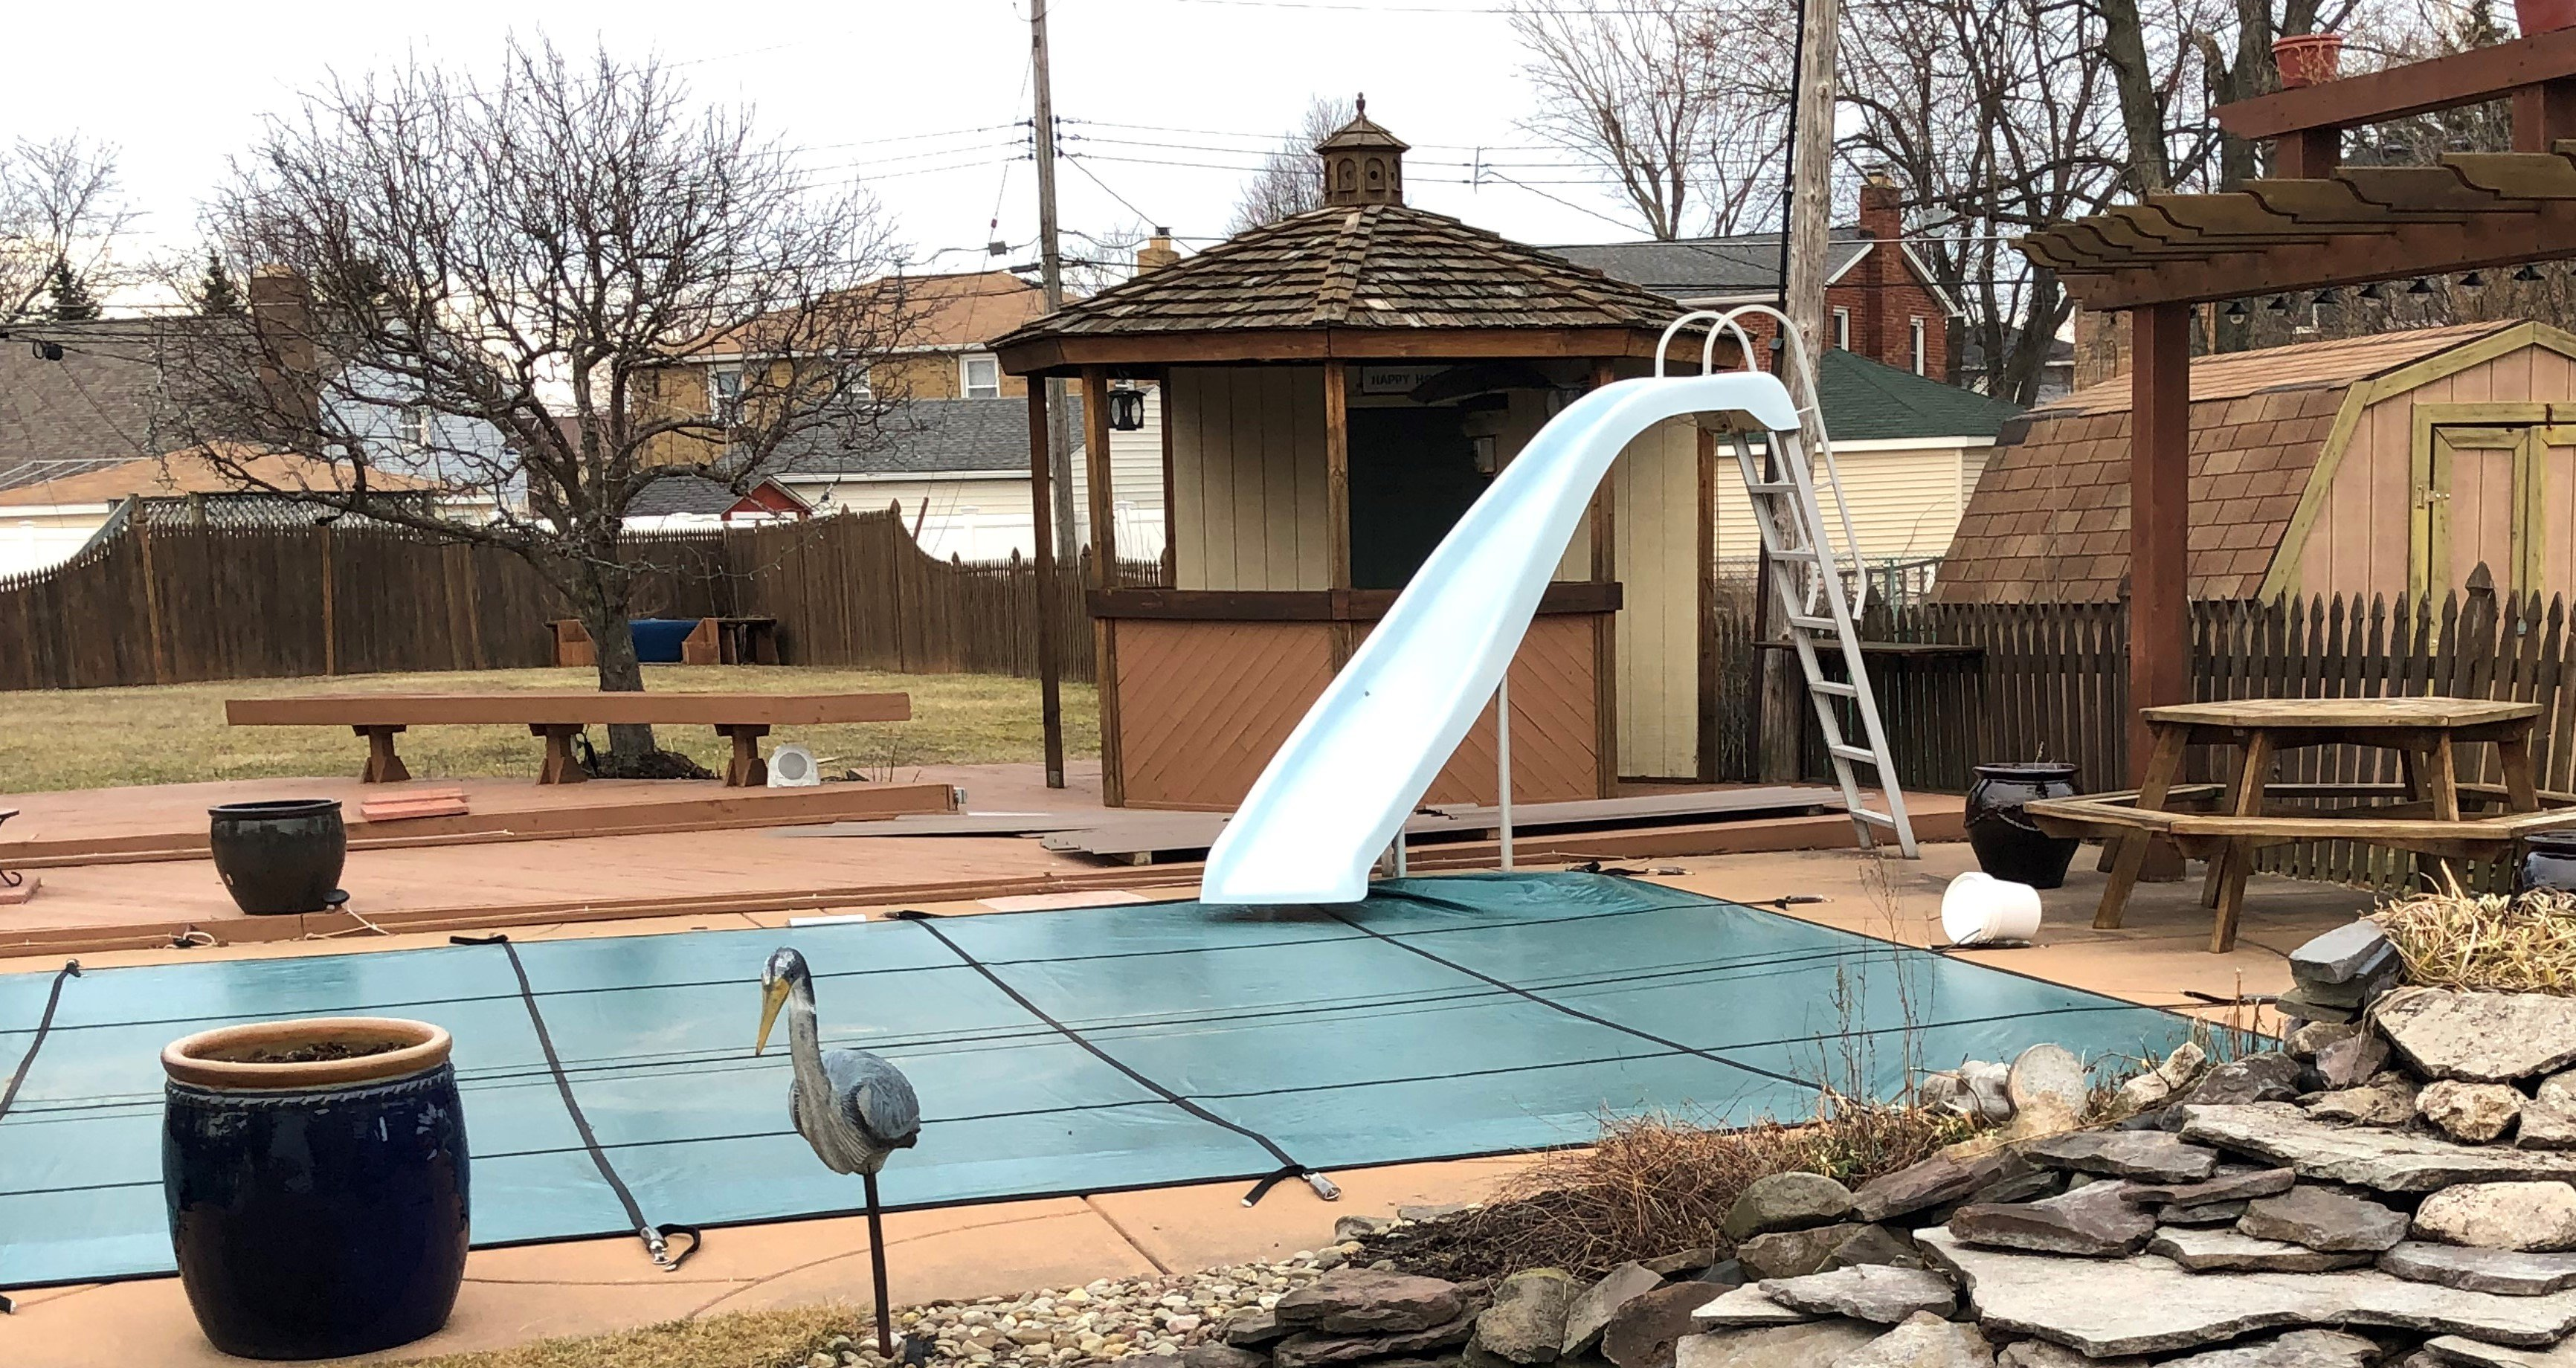 Solid versus Mesh Swimming Pool Safety Covers